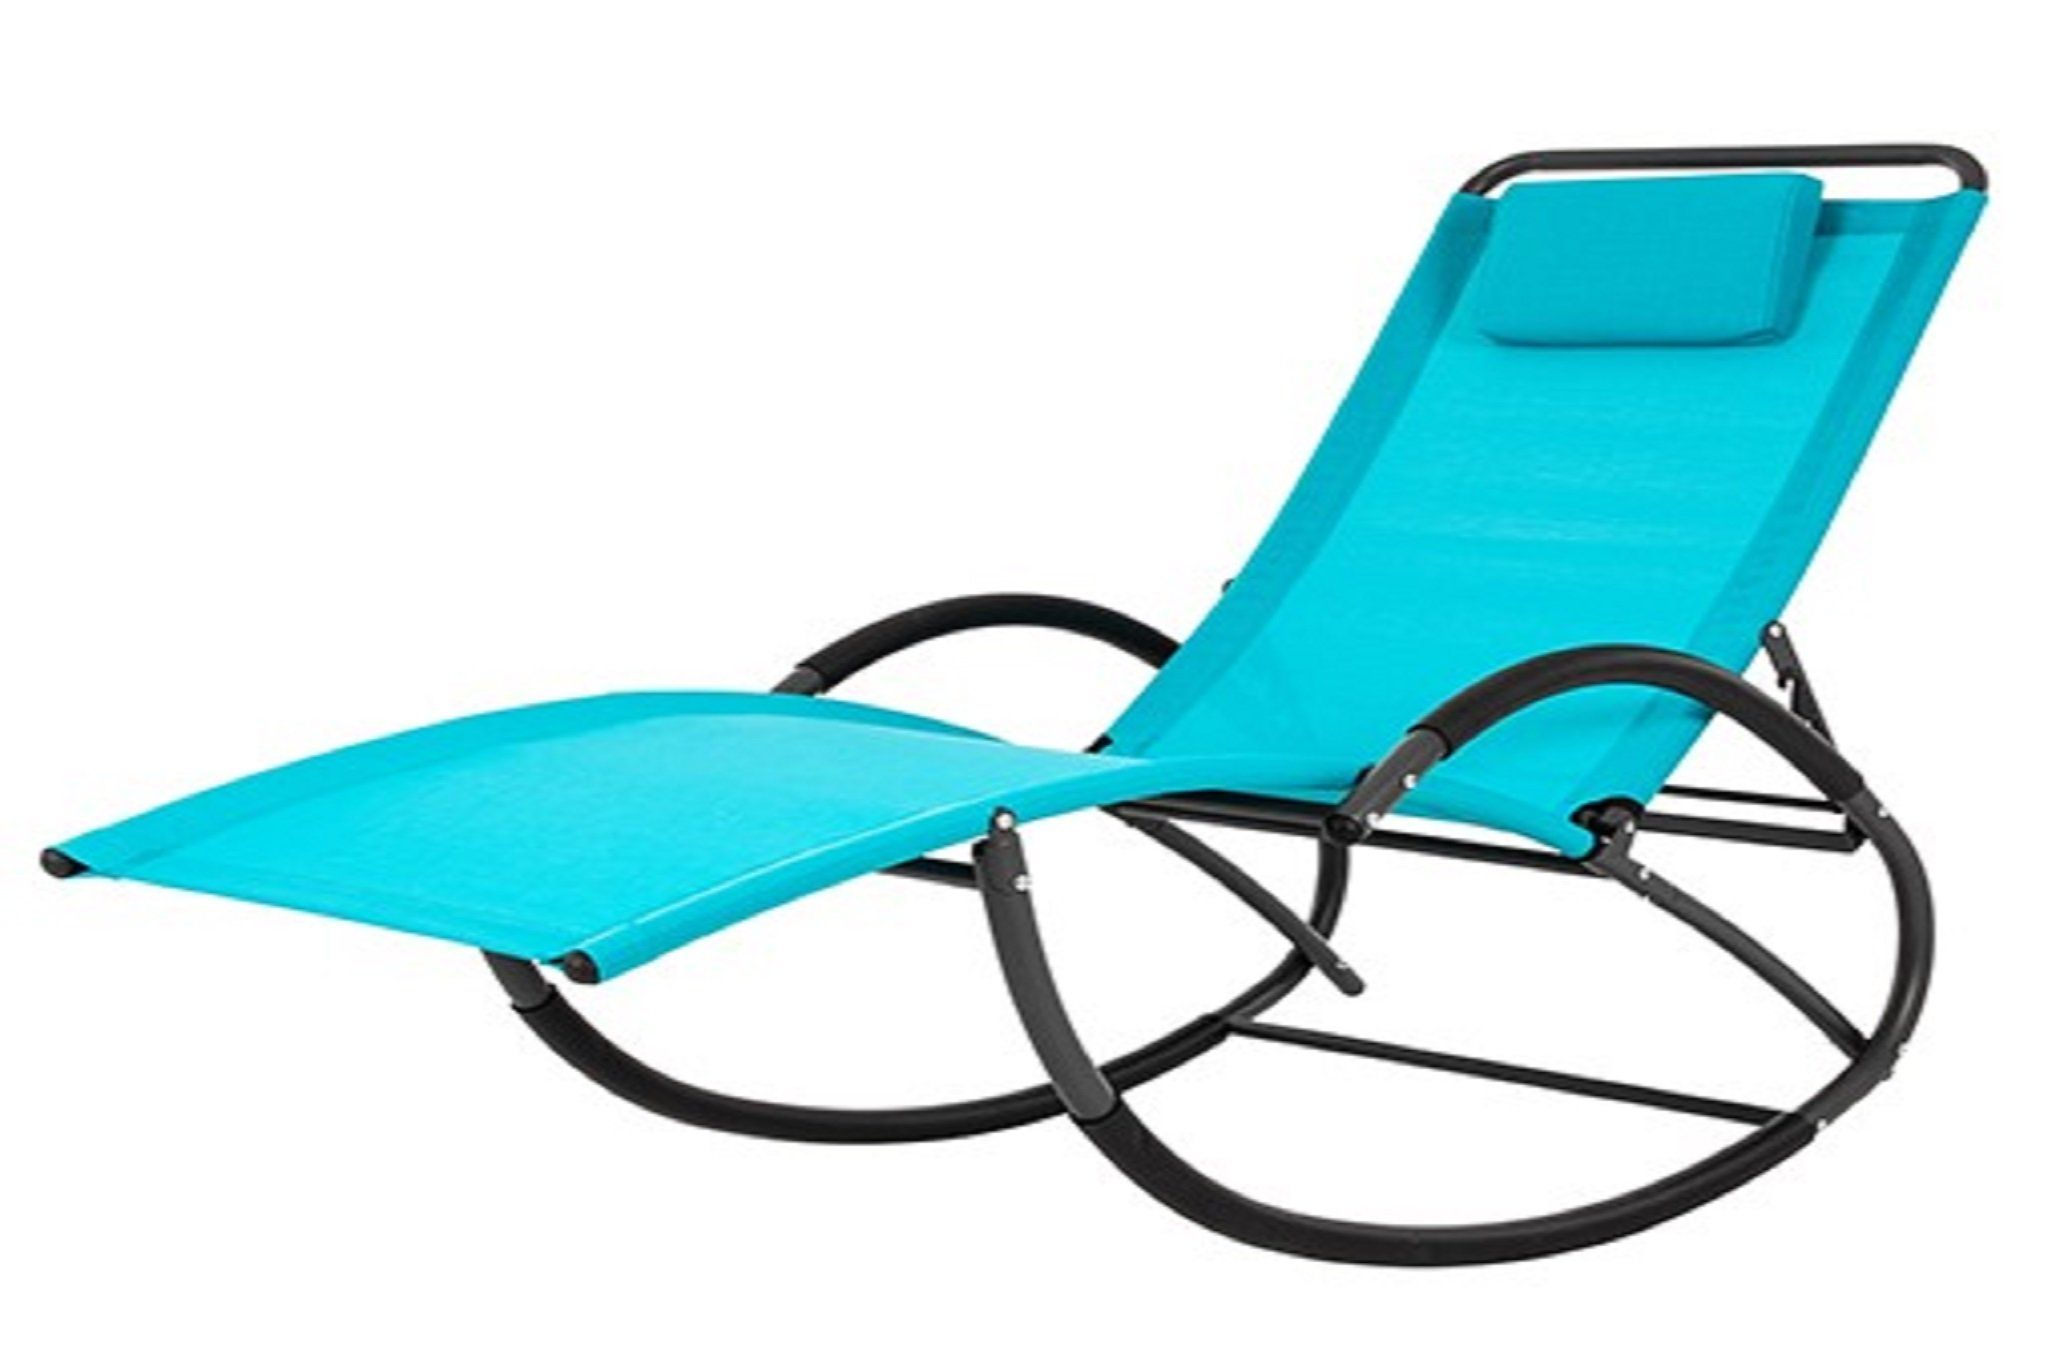 Wave Laze Chair relax home hammock camping forsale